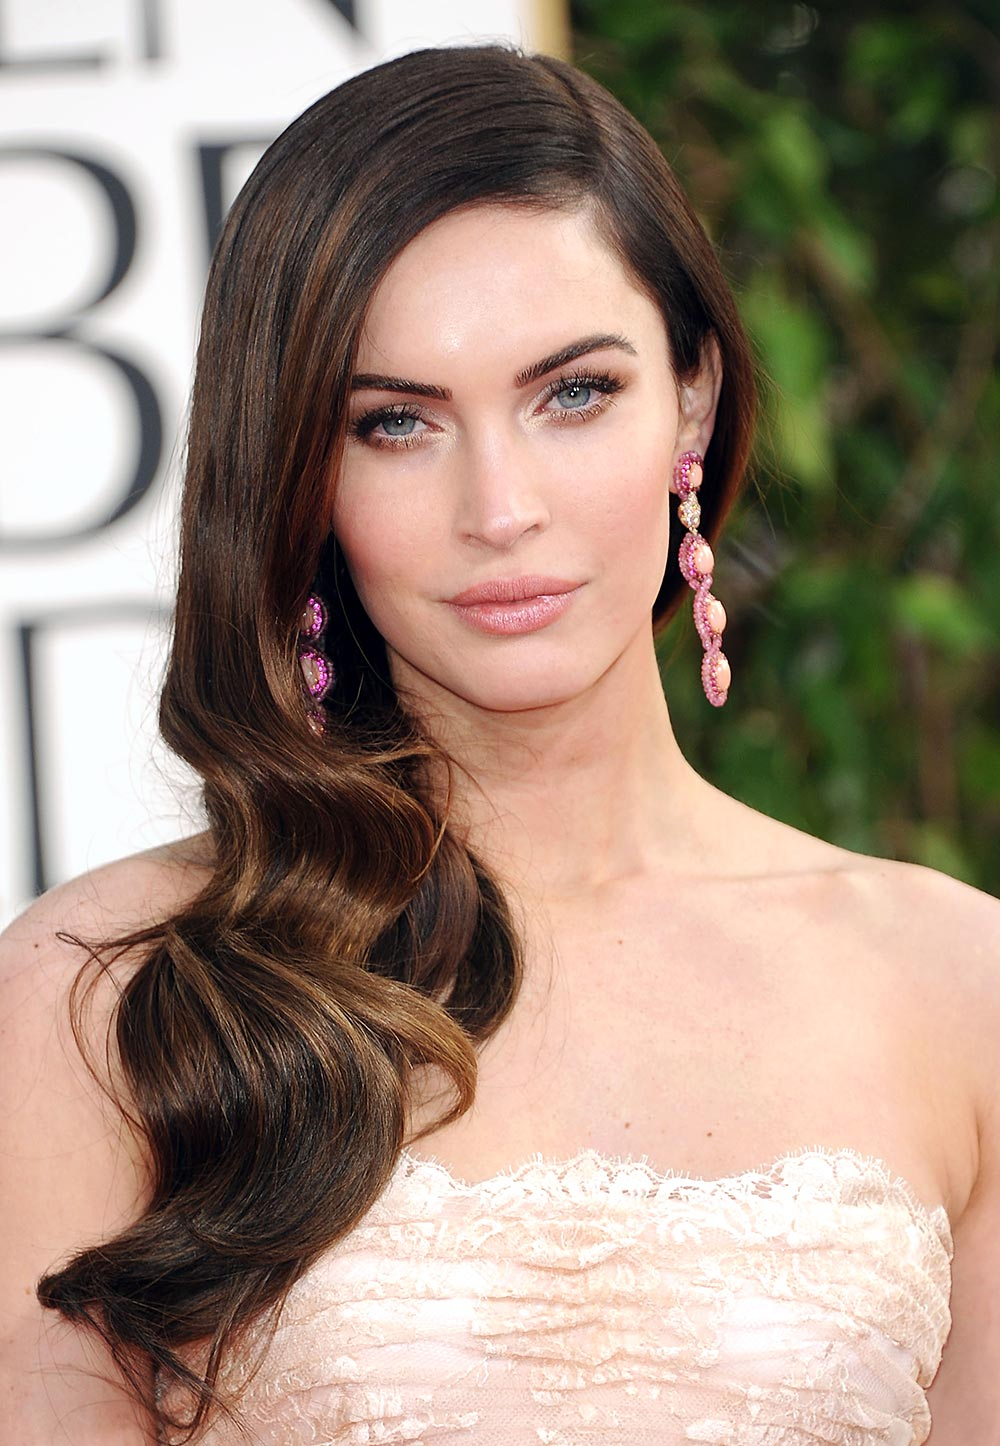 Megan Fox makeup looks at 2013 Golden Globes